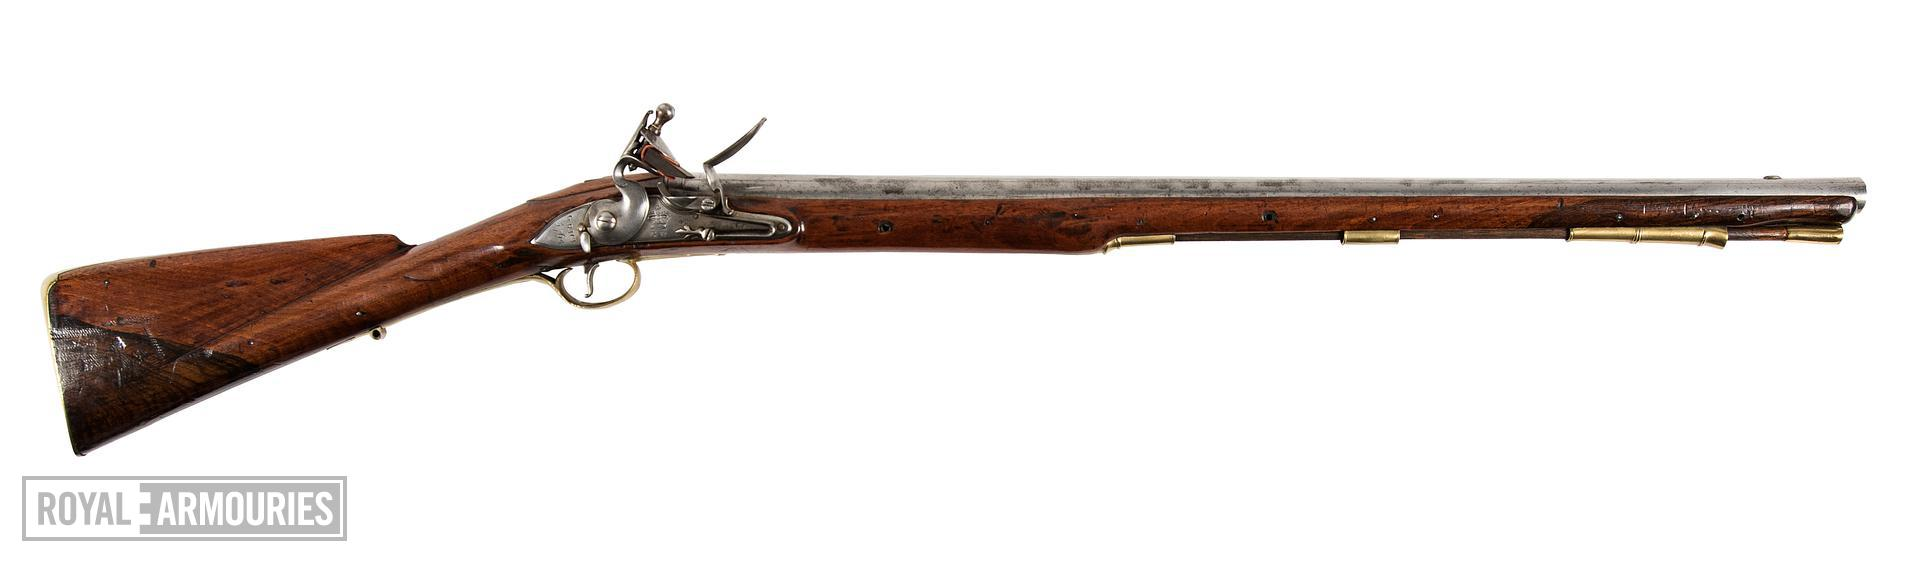 Pattern 1760 Flintlock muzzle-loading military Eliott Light Dragoon carbine, England, about 1764. By Grice. (XII.3511)